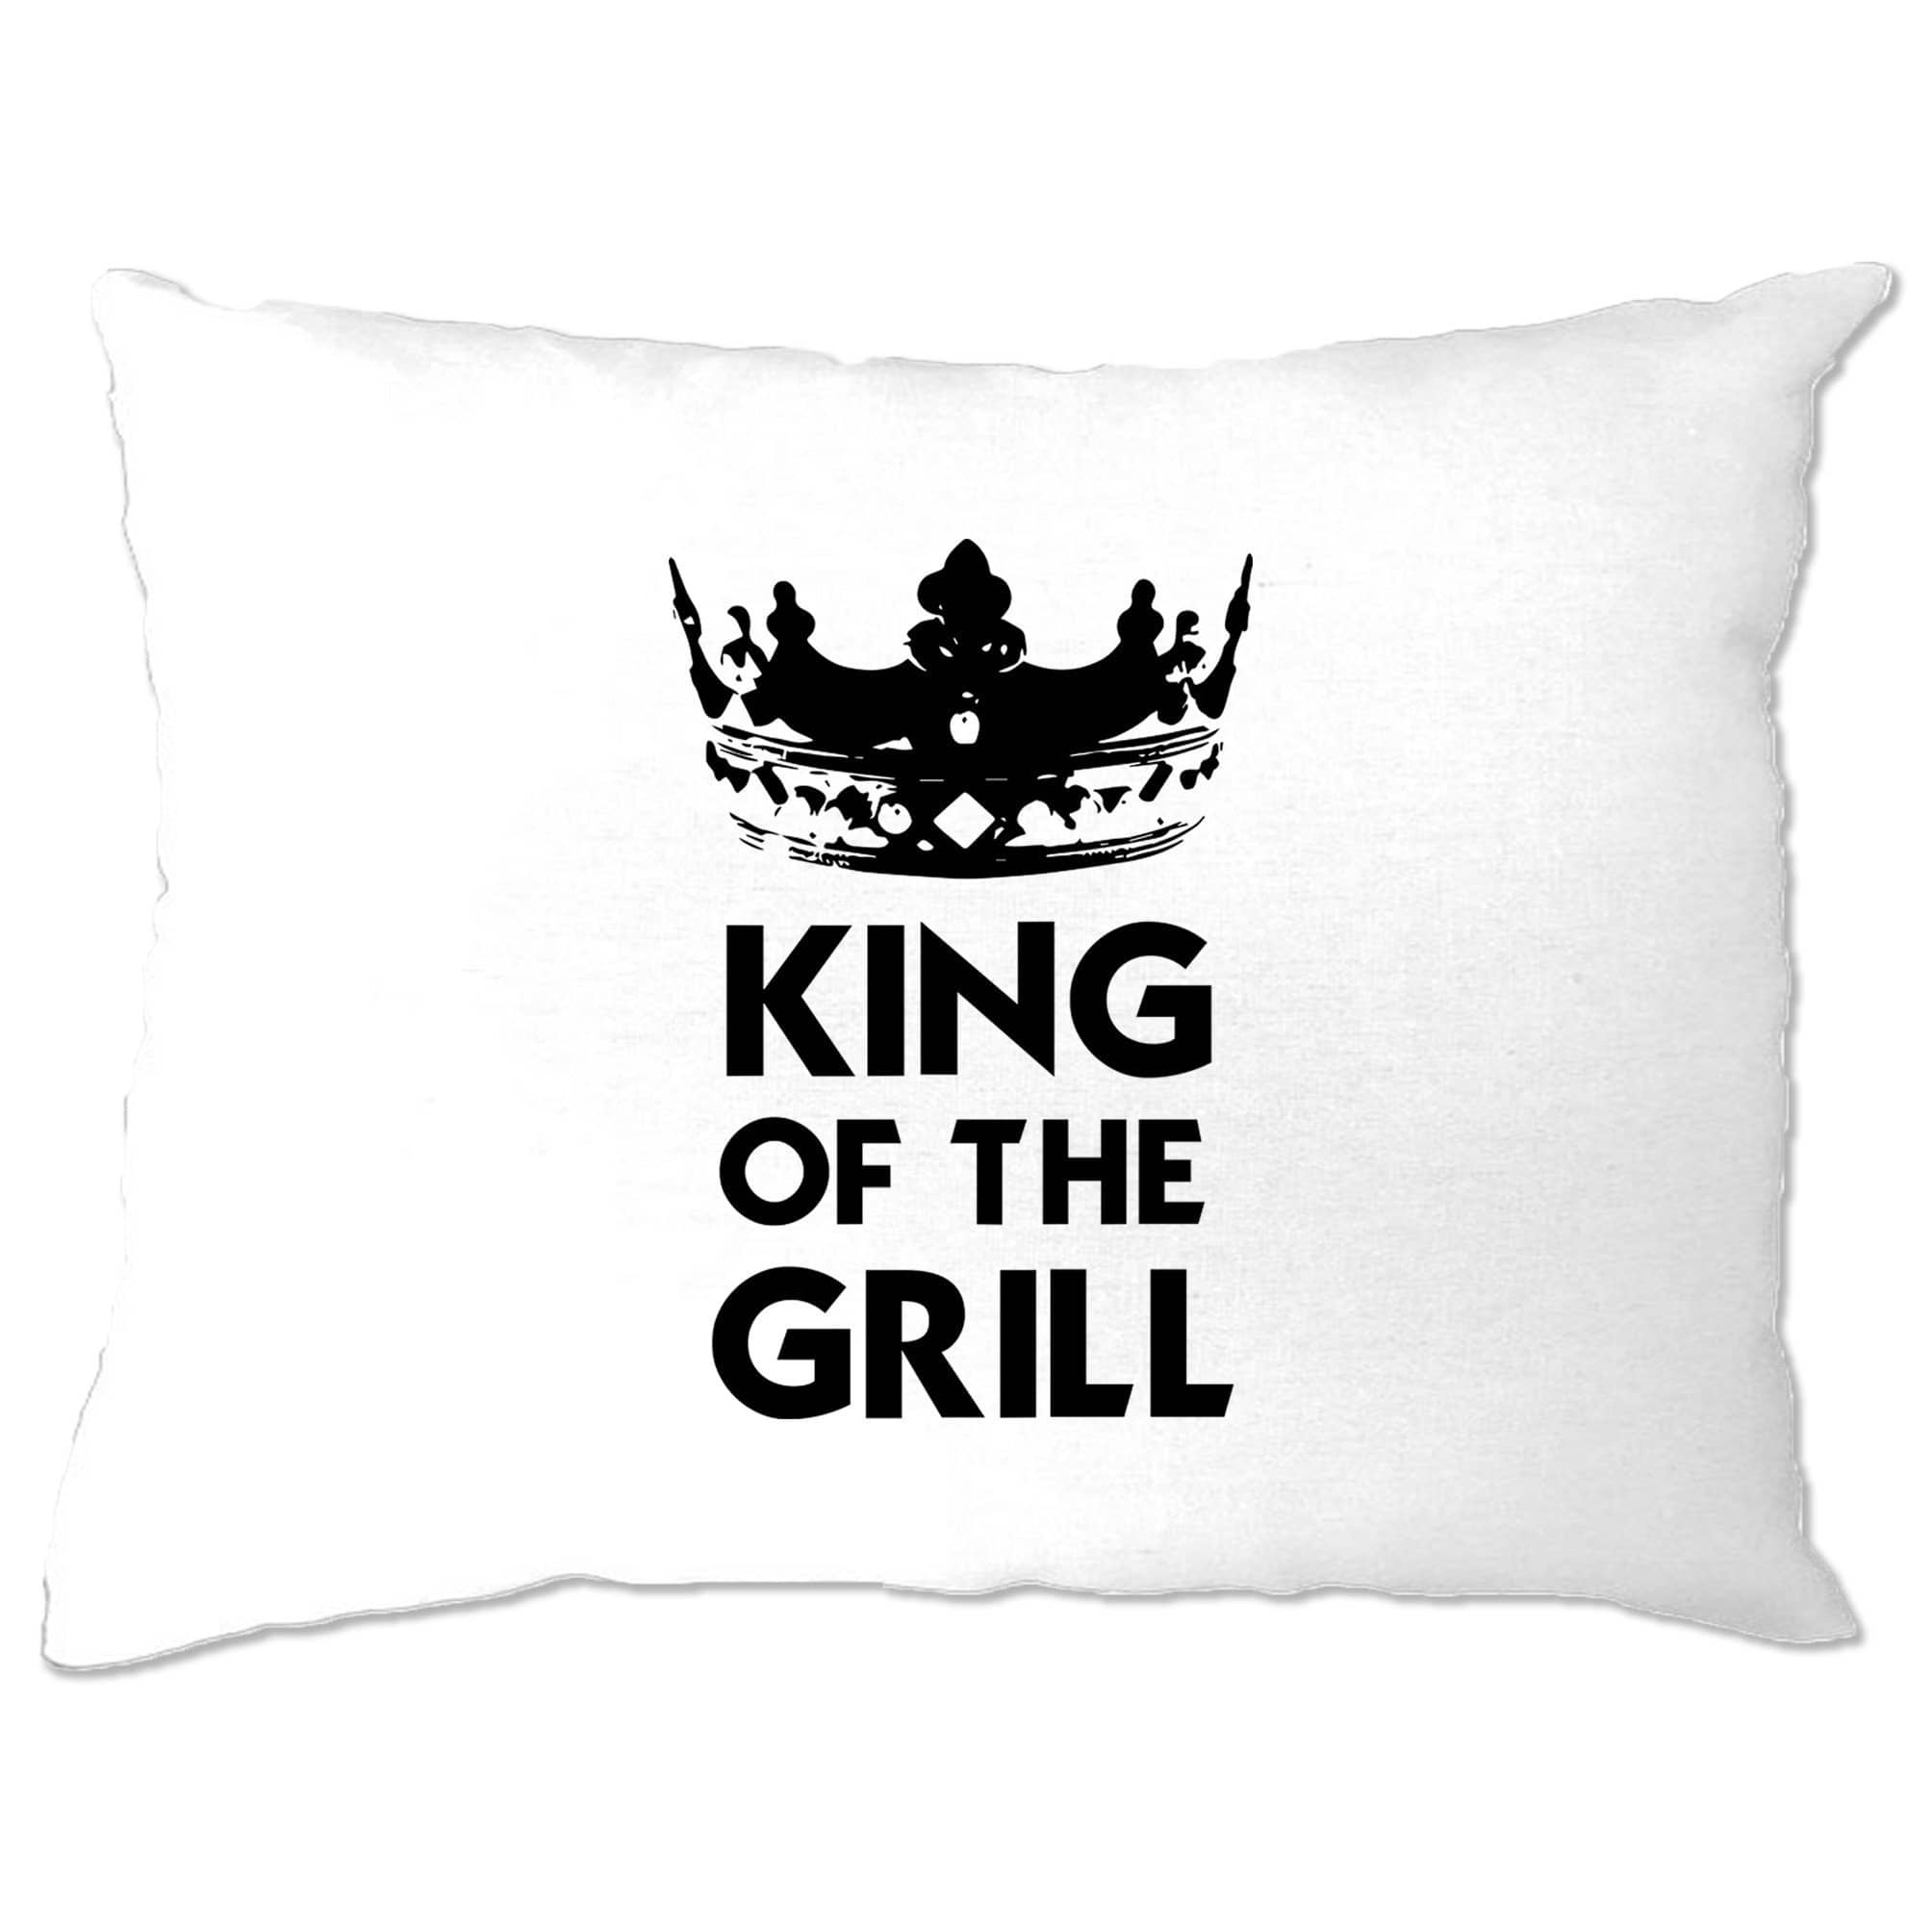 Novelty Cooking Pillow Case King Of The Grill Slogan